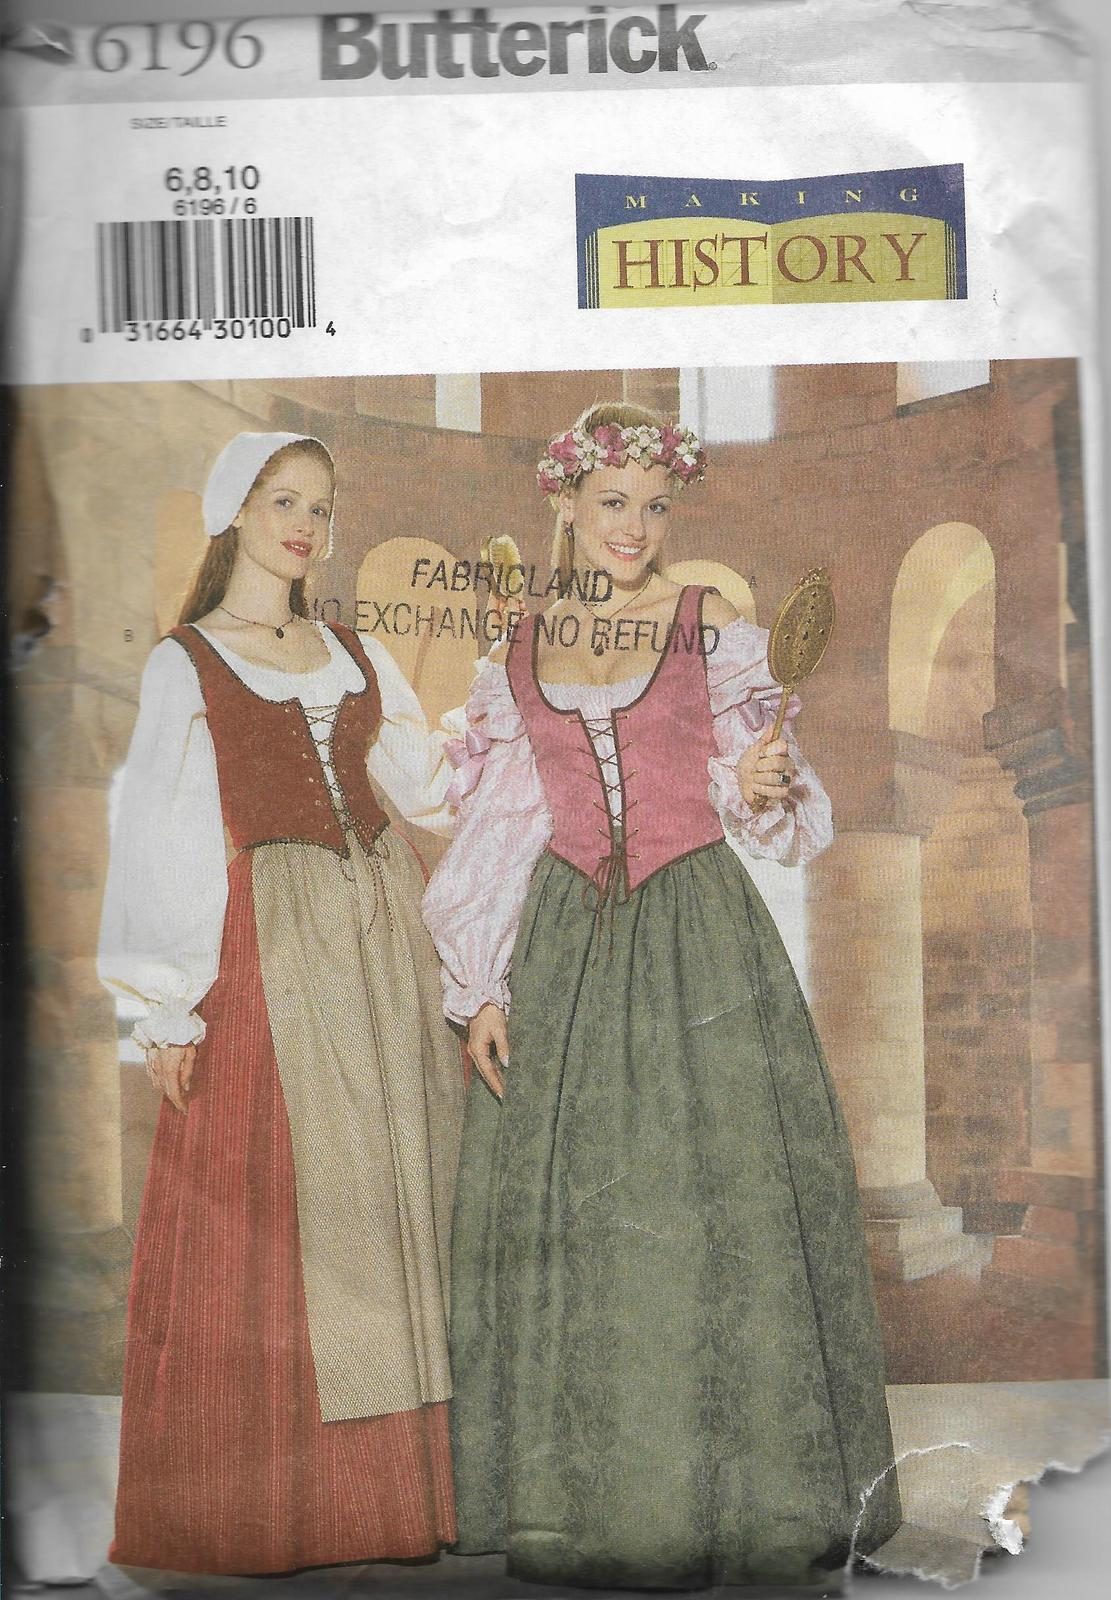 Butterick 6196 History Period Costume Maiden Dress Size 6 8 10 Ladies F/F Uncut